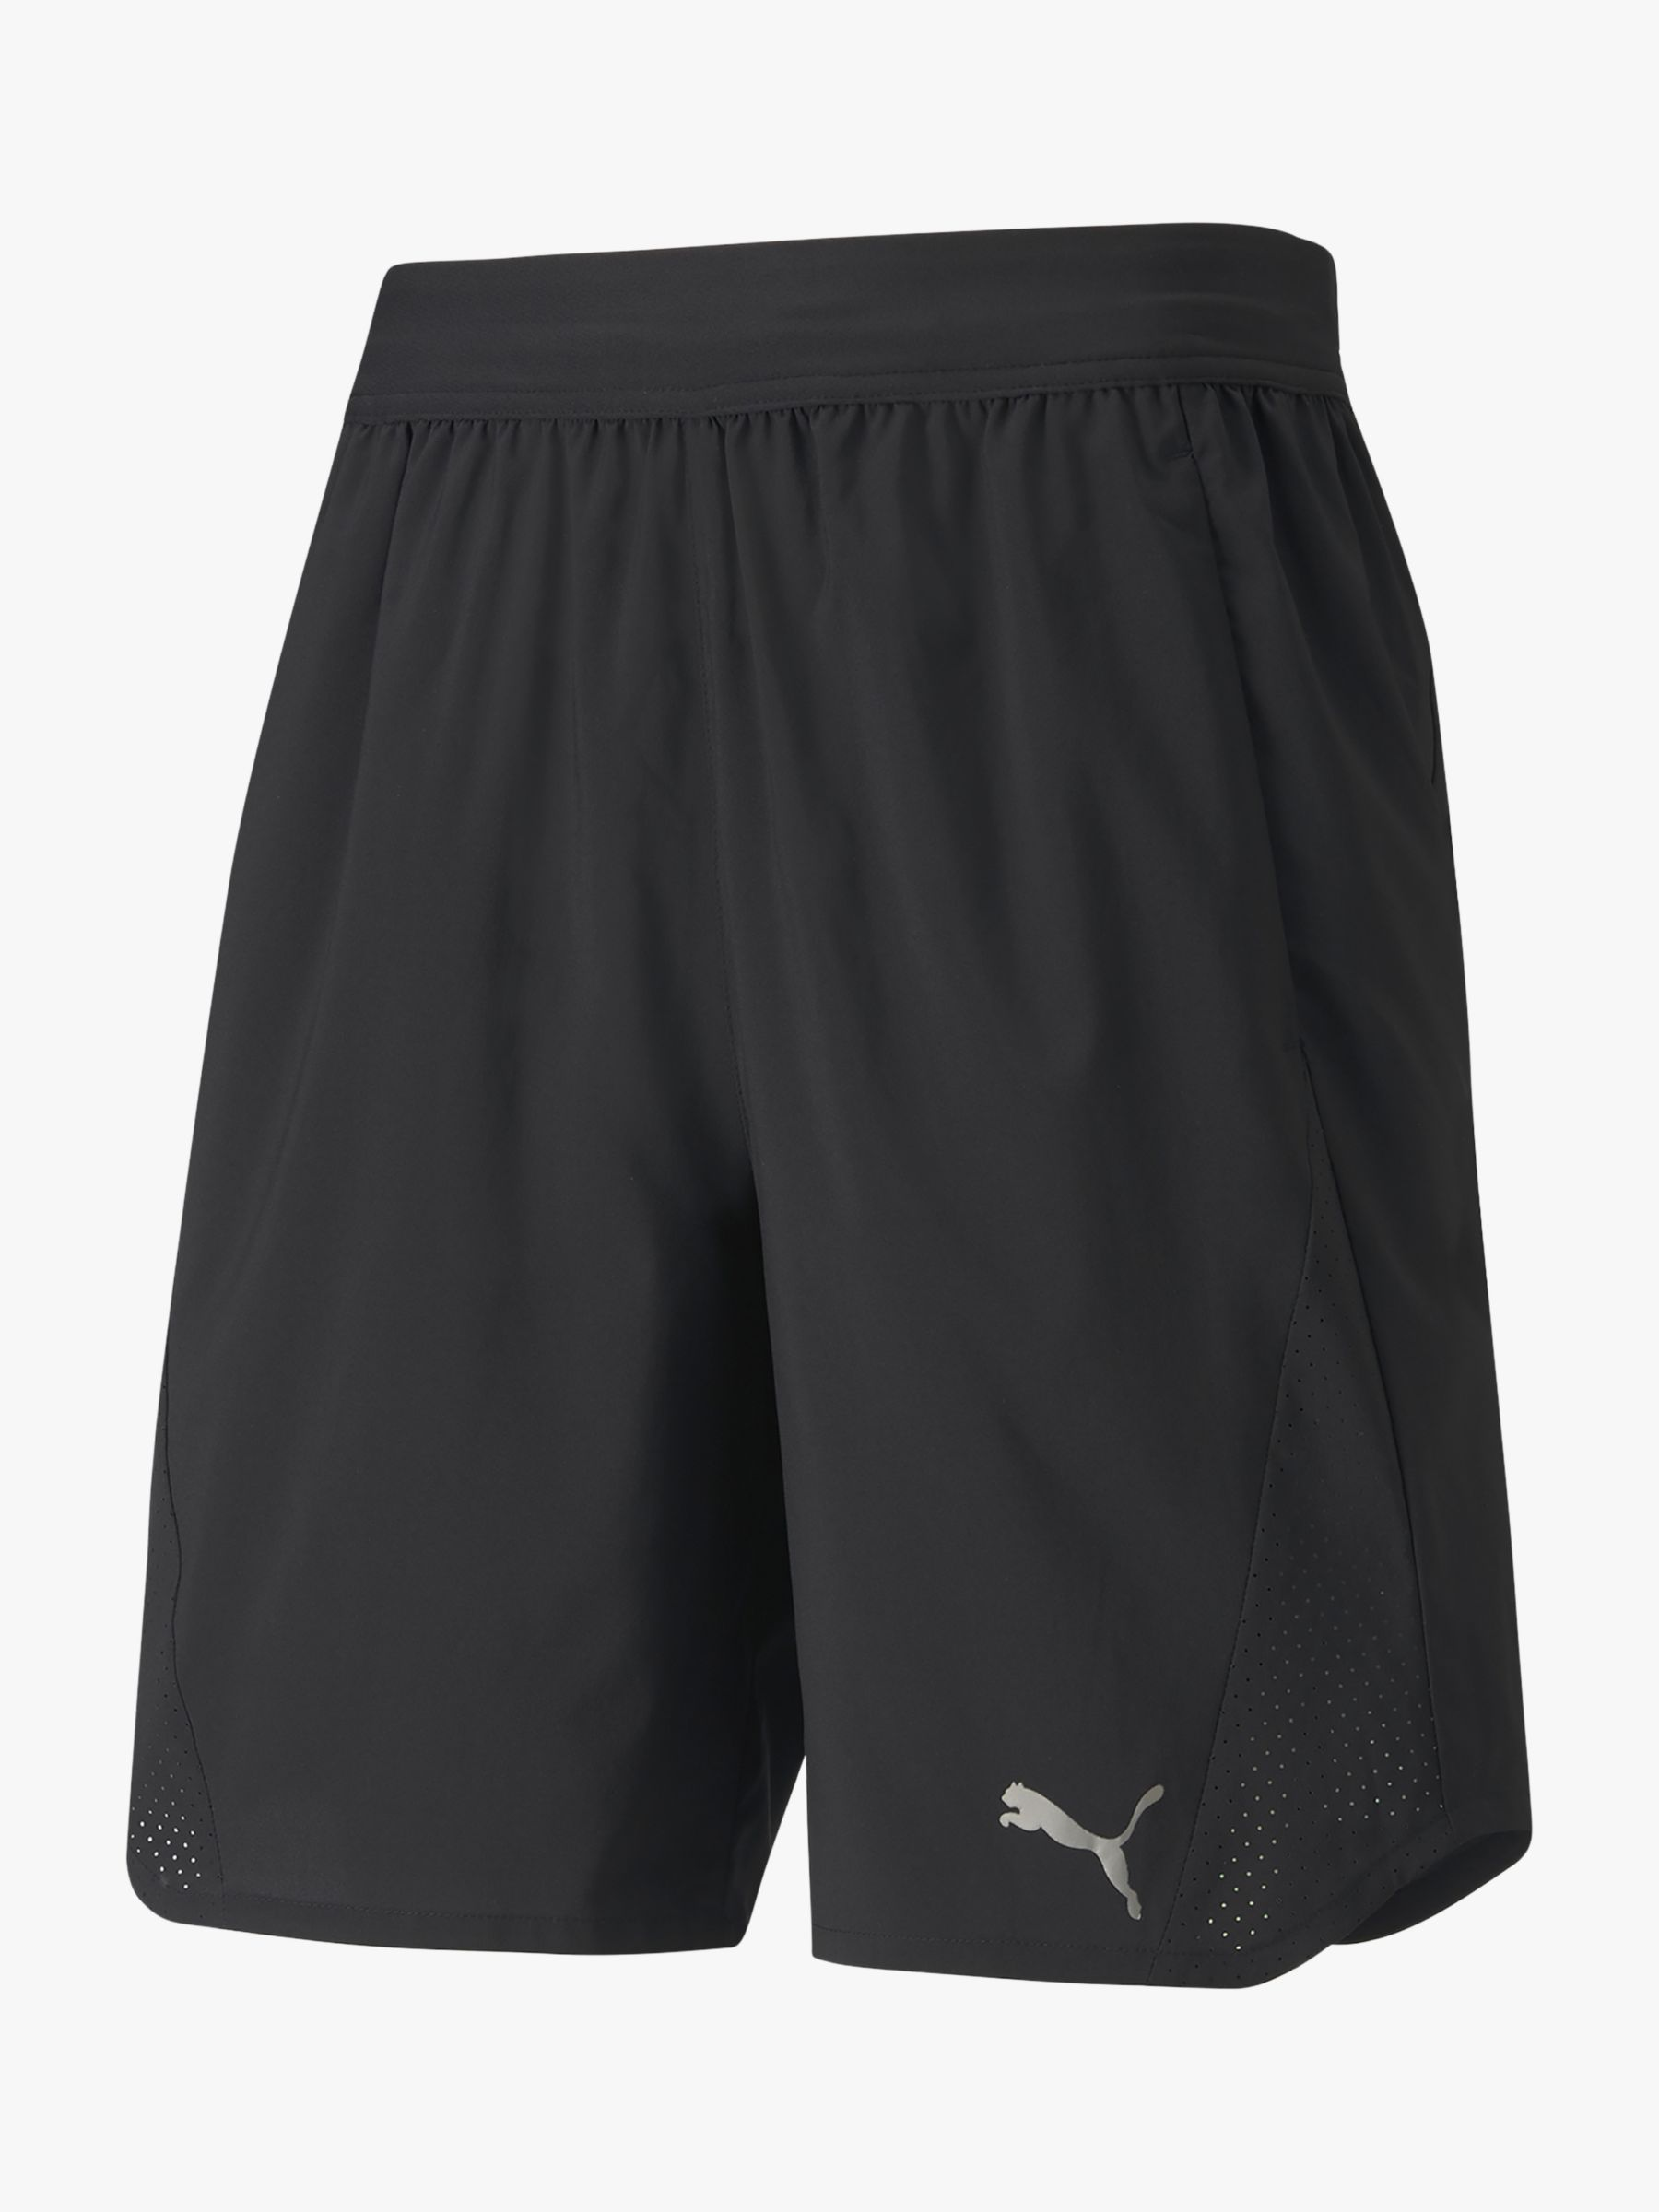 Buy PUMA Power THERMO R+ Vent Training Shorts, PUMA Black, S Online at www.retrievedmagnetic.com